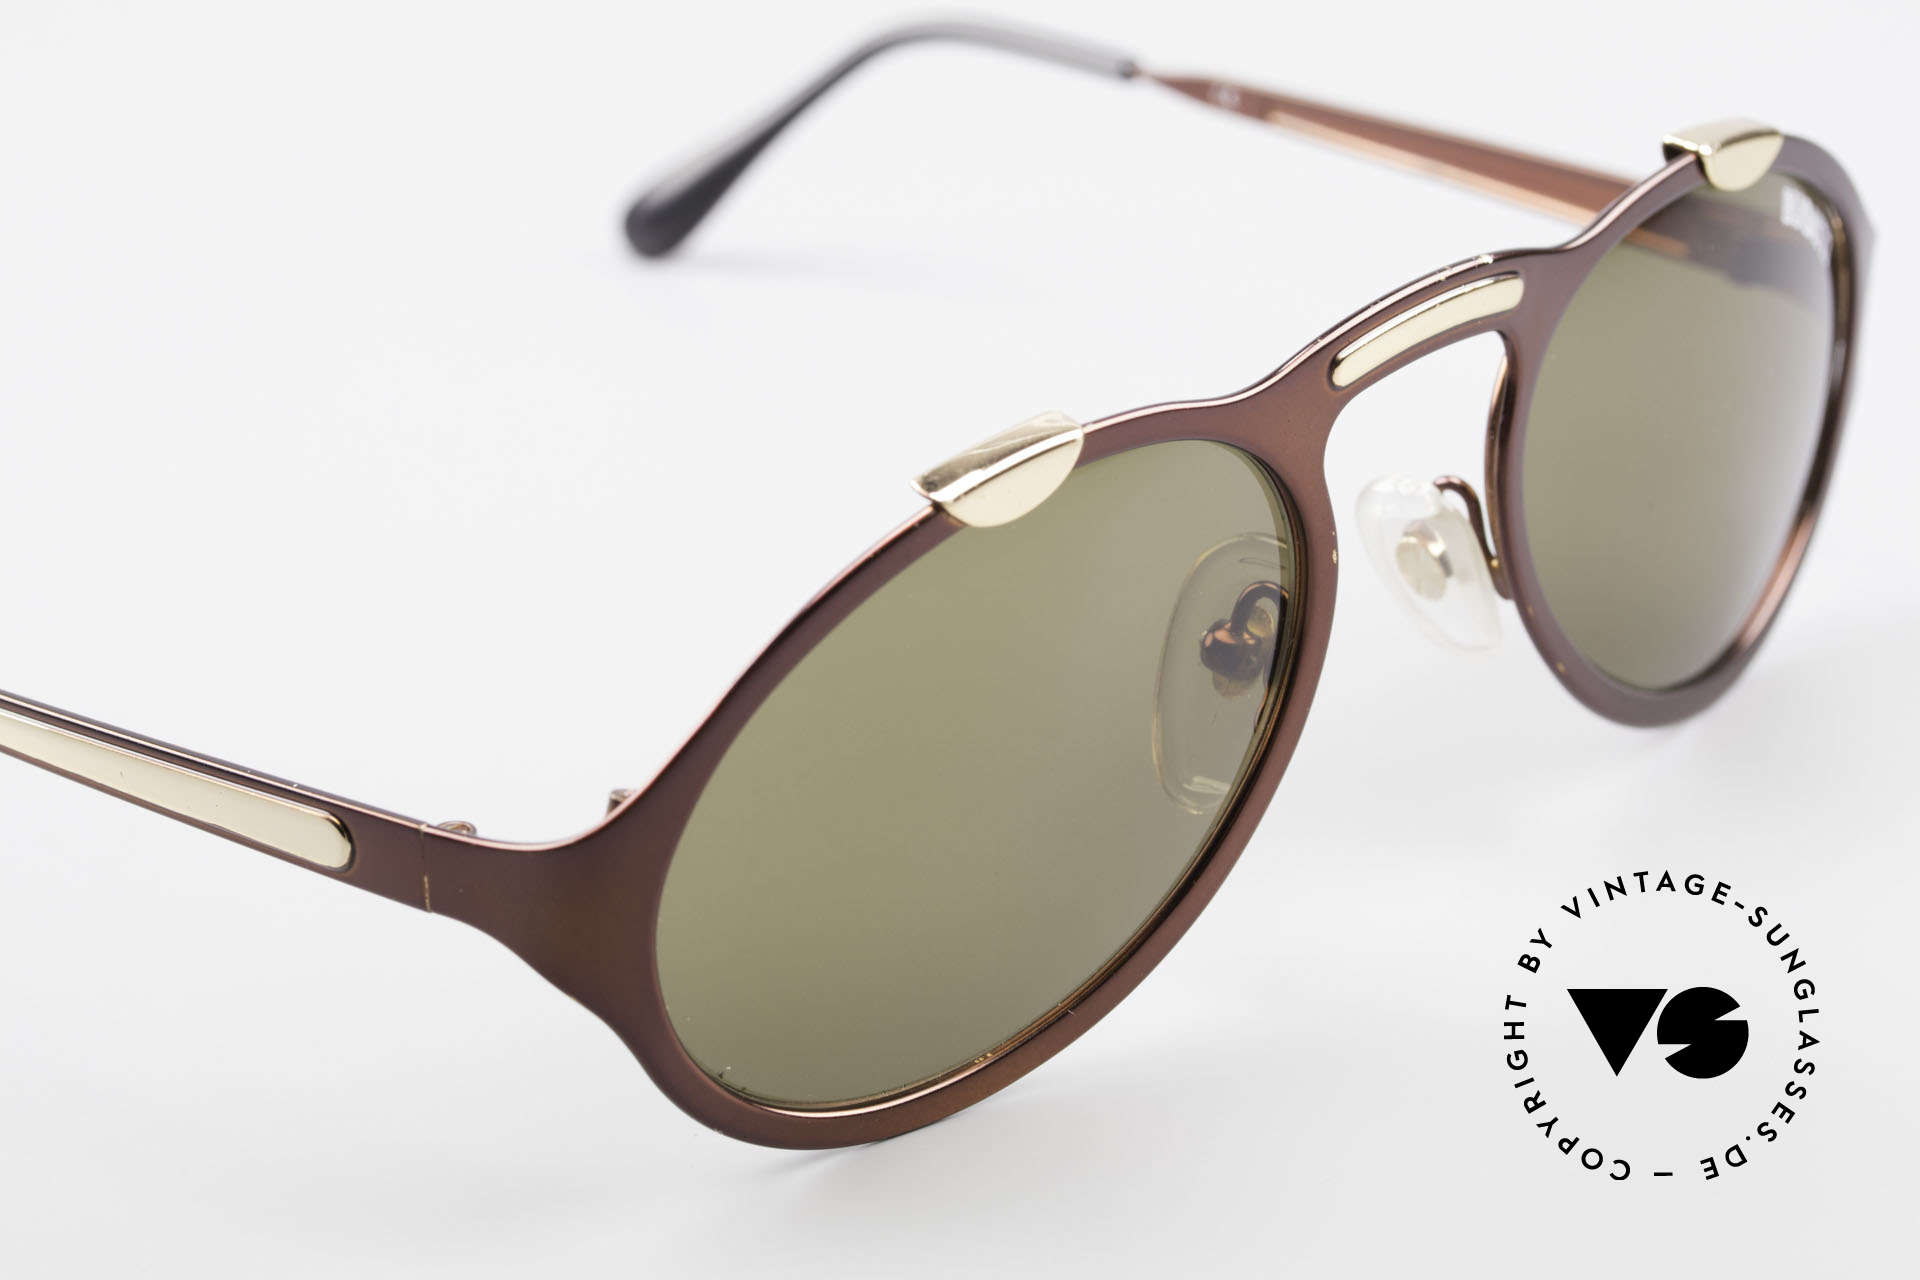 Bugatti 13169 Limited Old Collector's Sunglasses, frame has some chips & lenses have small scratches, Made for Men